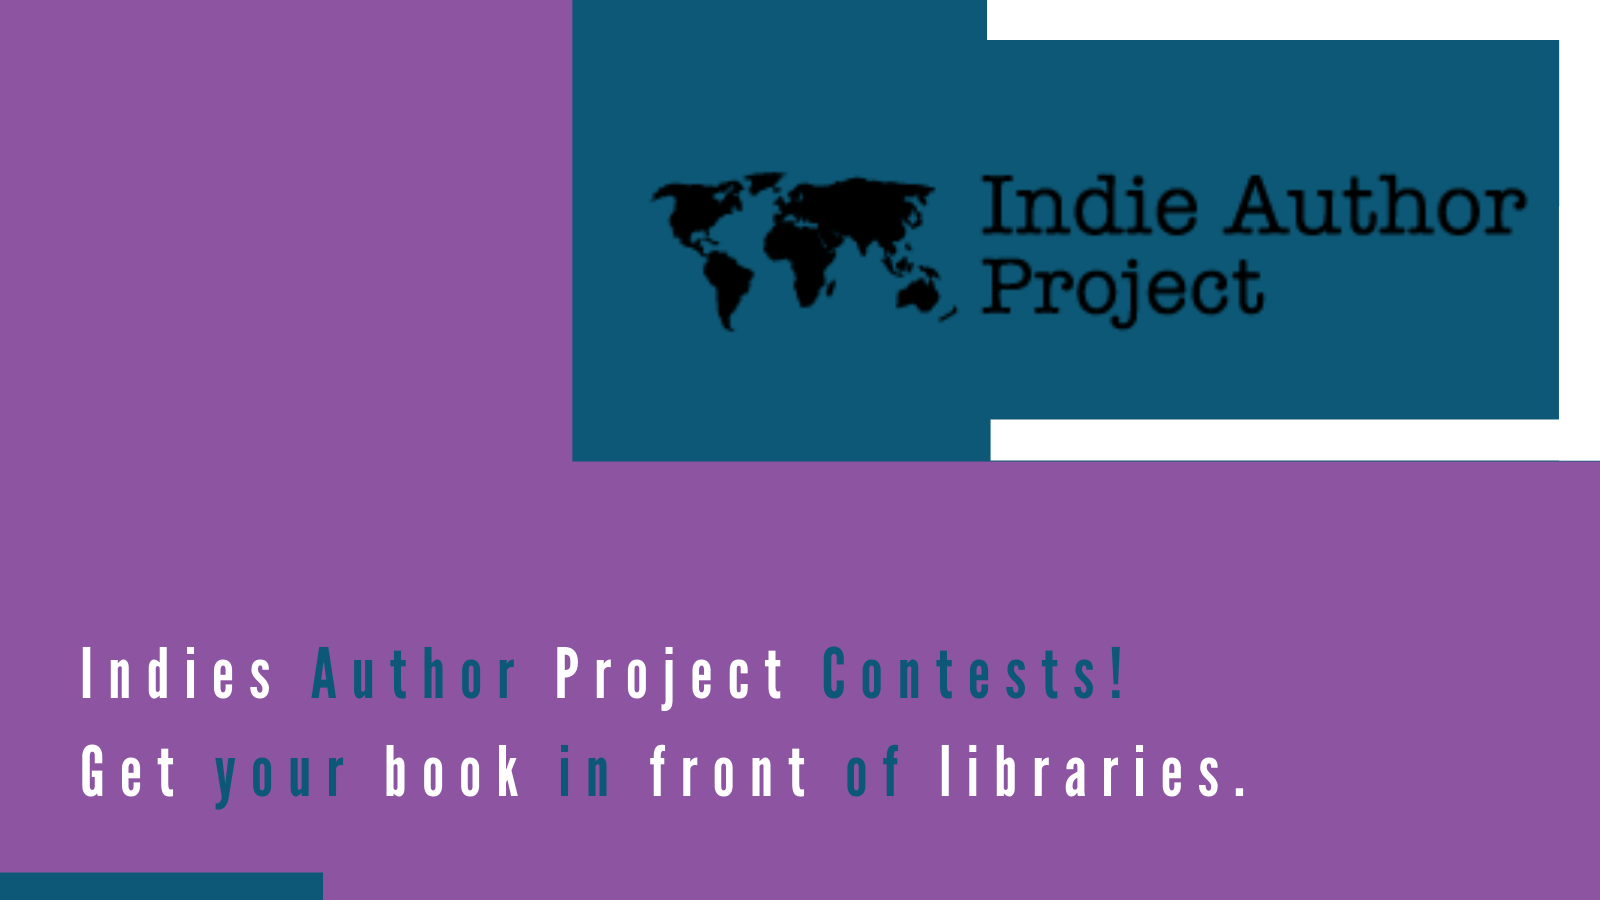 twitter post about indie author contest